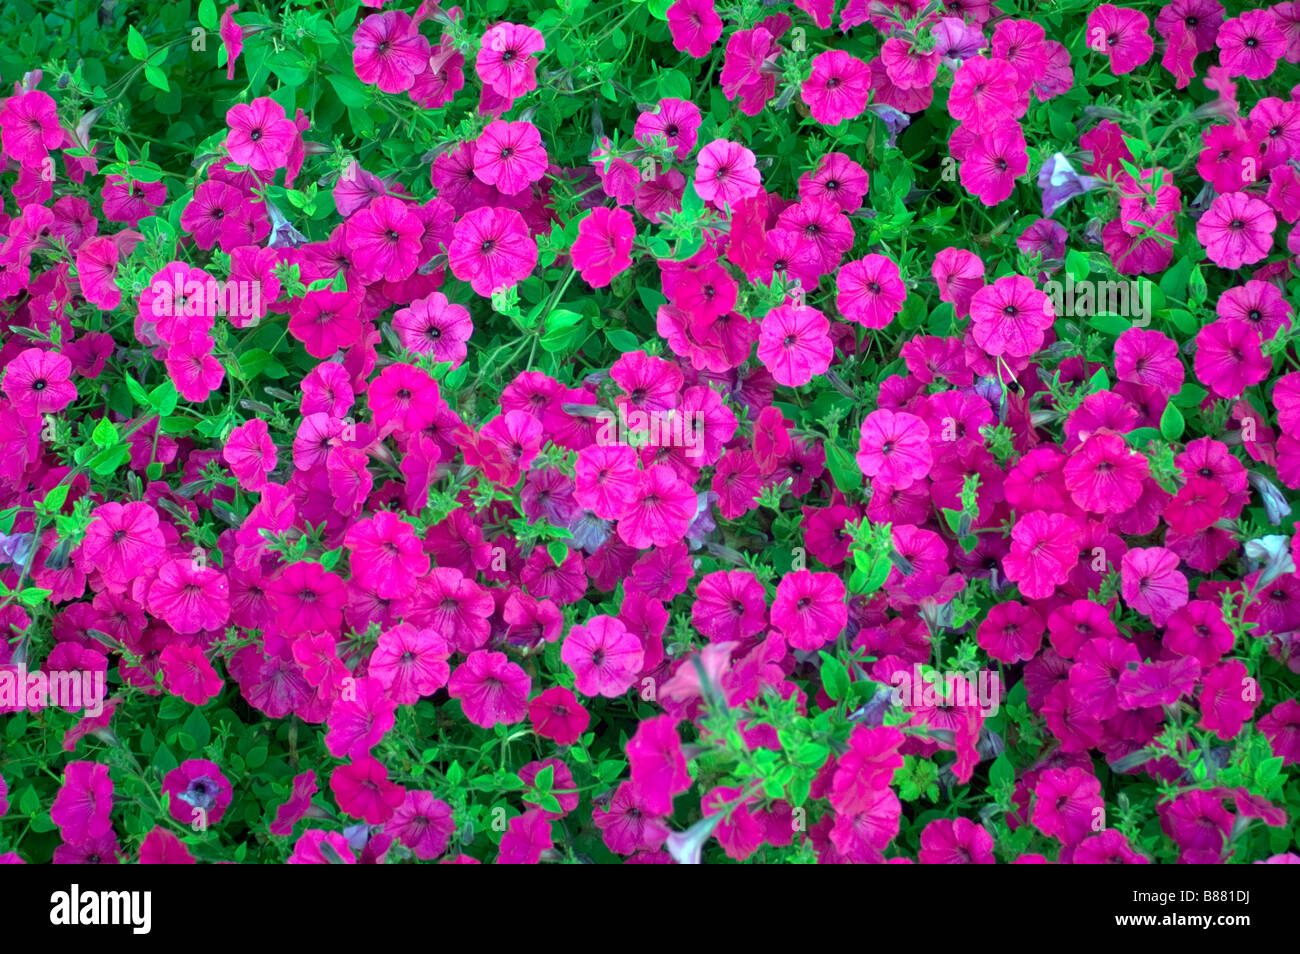 Purple pink colored flowers ground cover flora stock photo 22304398 purple pink colored flowers ground cover flora mightylinksfo